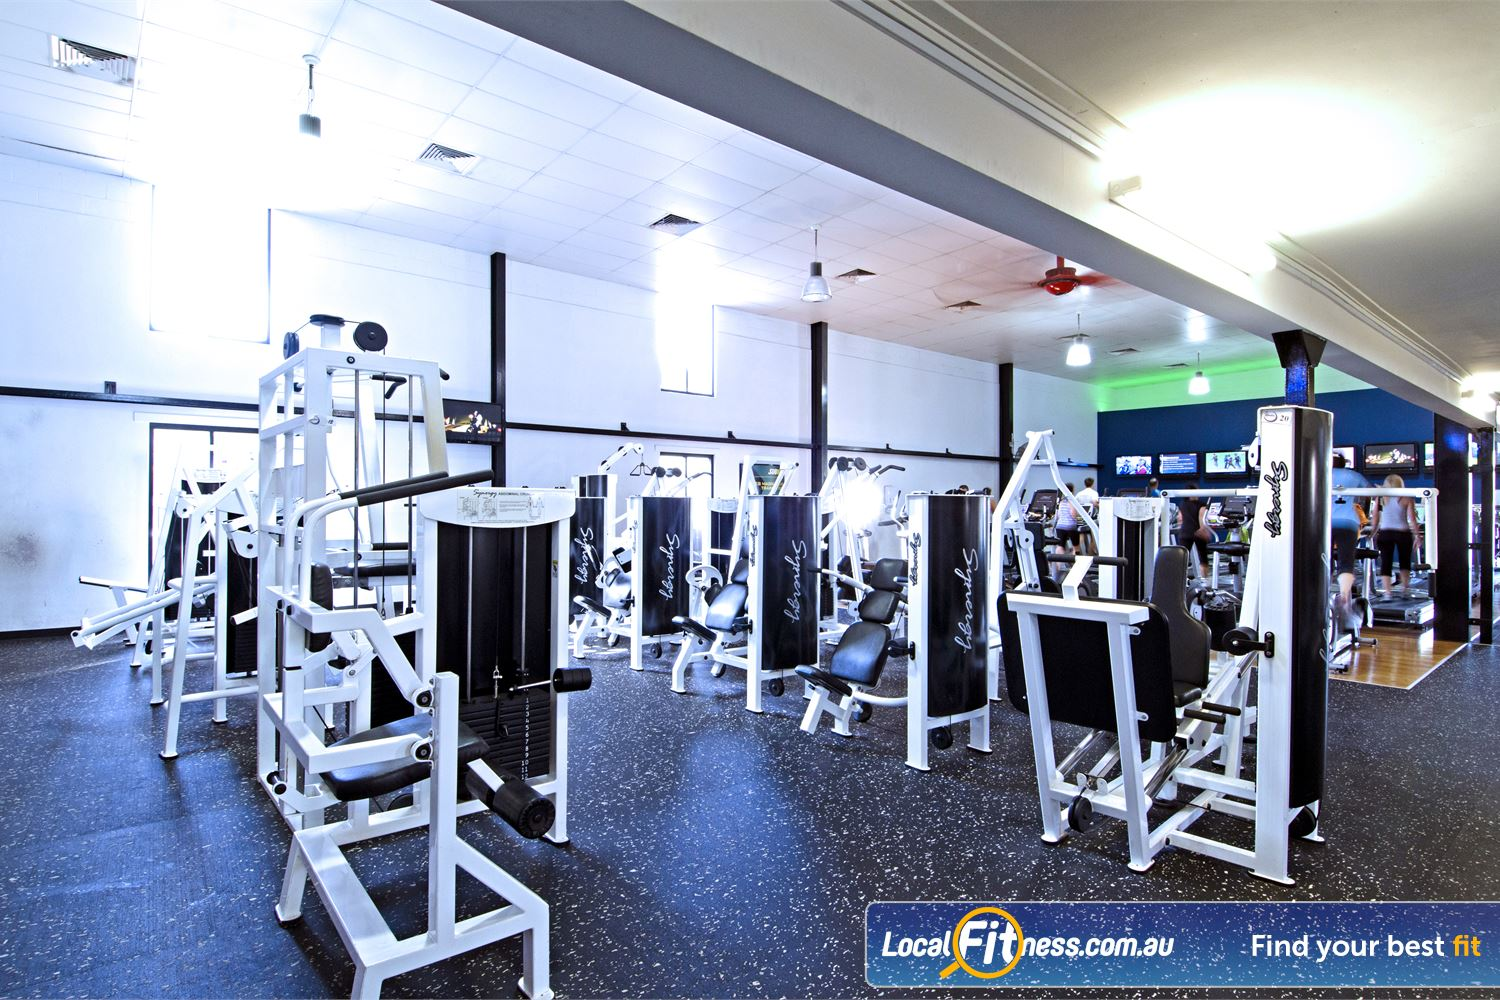 Goodlife Health Clubs Near Tennyson The Graceville gym is fitted with state of the art equipment from Calgym Synergy.